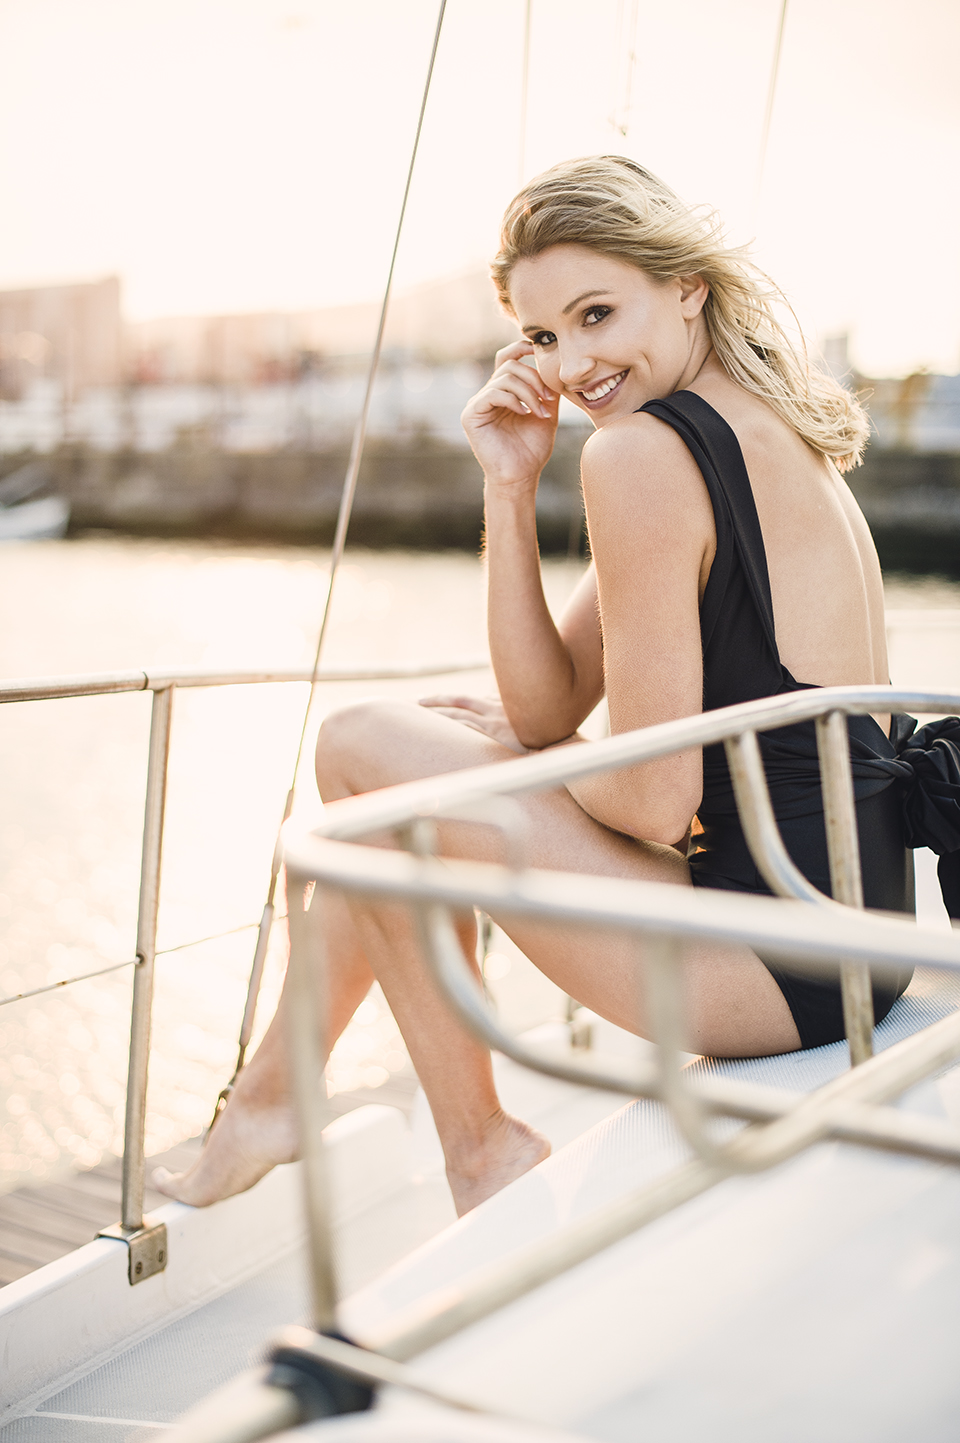 RyanParker_CapeTown_Photographer_Editorial_Fashion_Yacht_Nautical_RyanParker_CapeTown_Photographer_Editorial_Fashion_Yacht_Nautical_DSC_1603.jpg